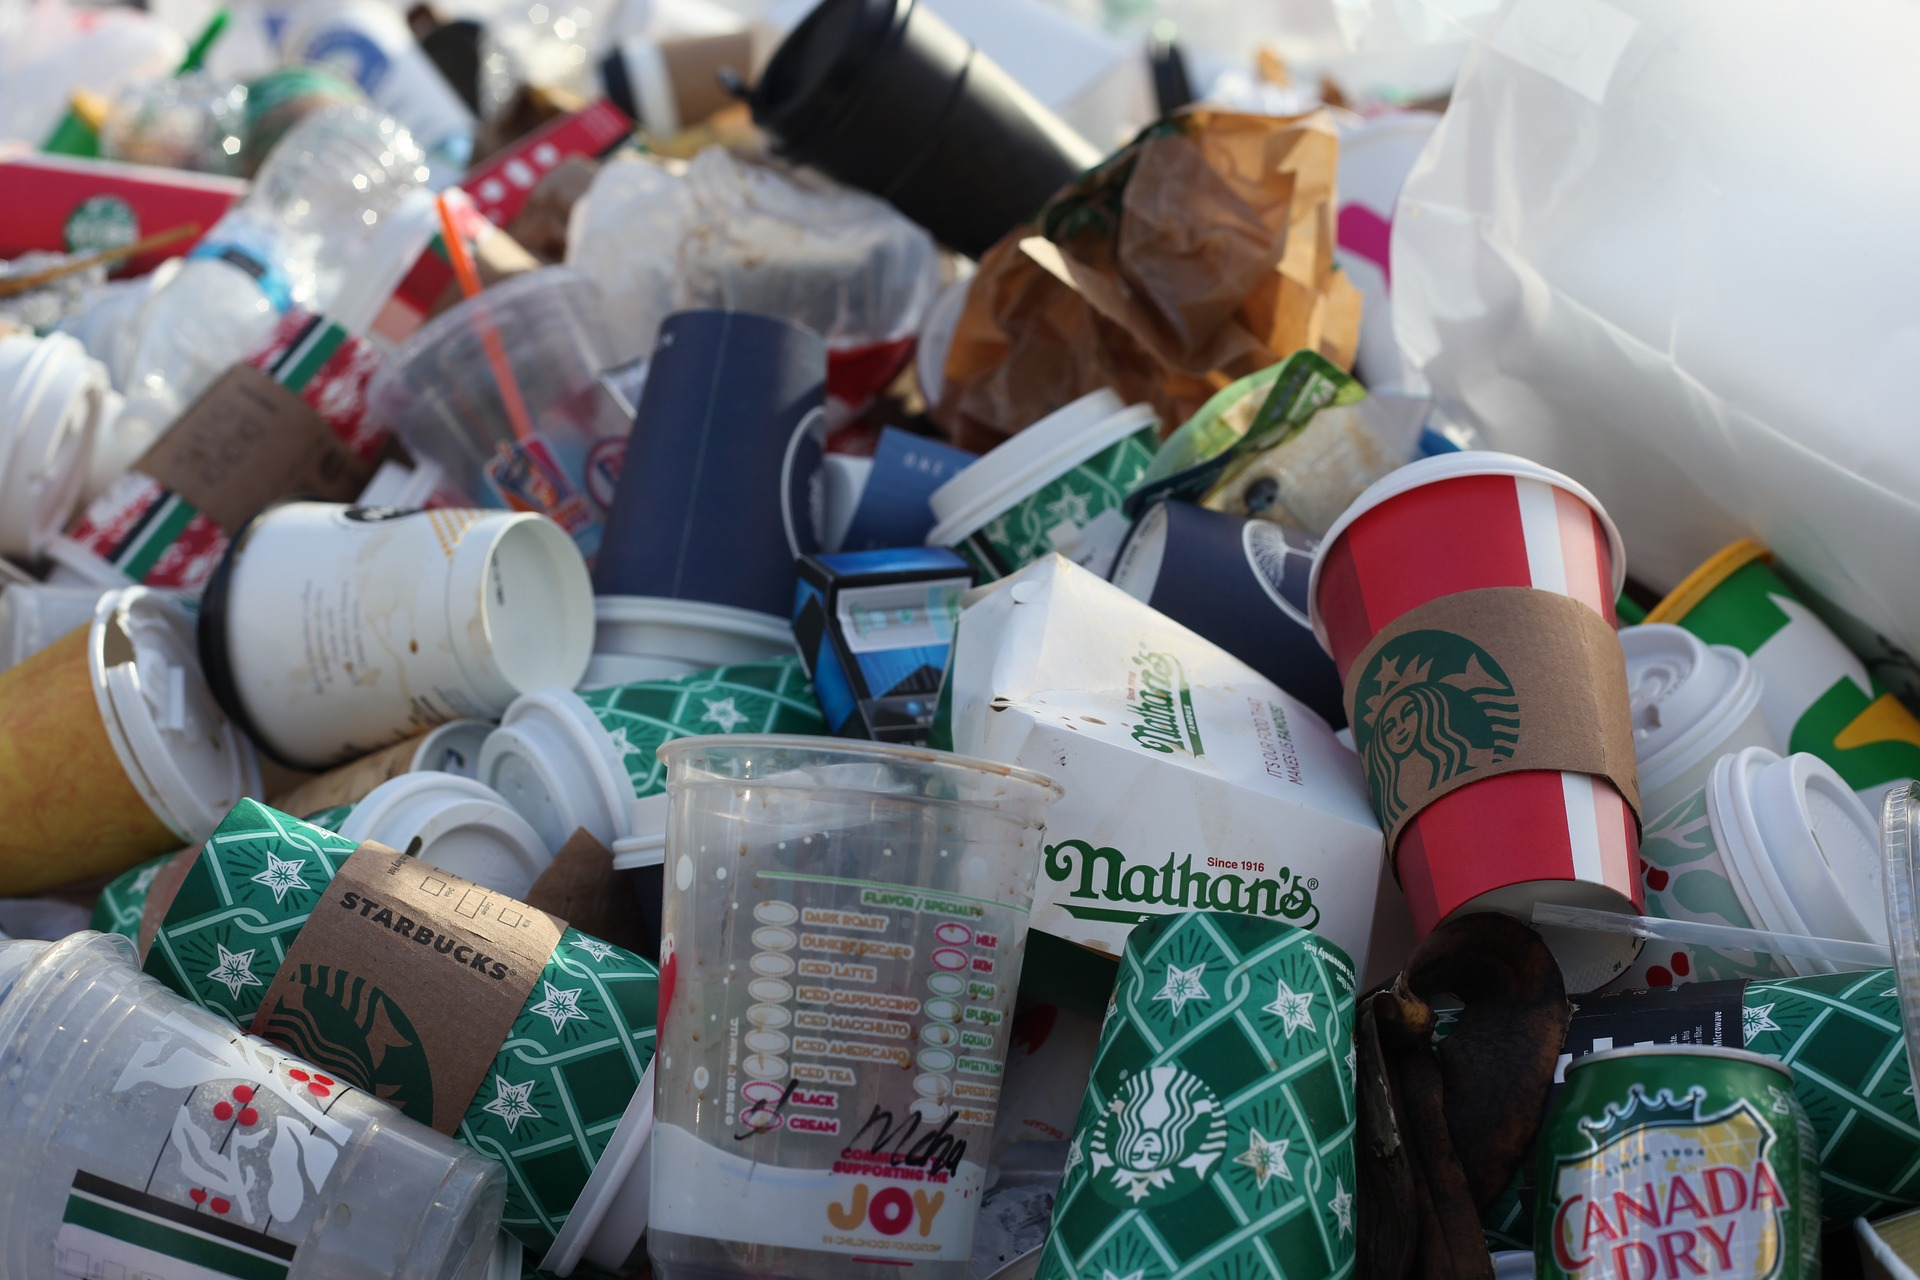 littered single use coffee cups harming the environment